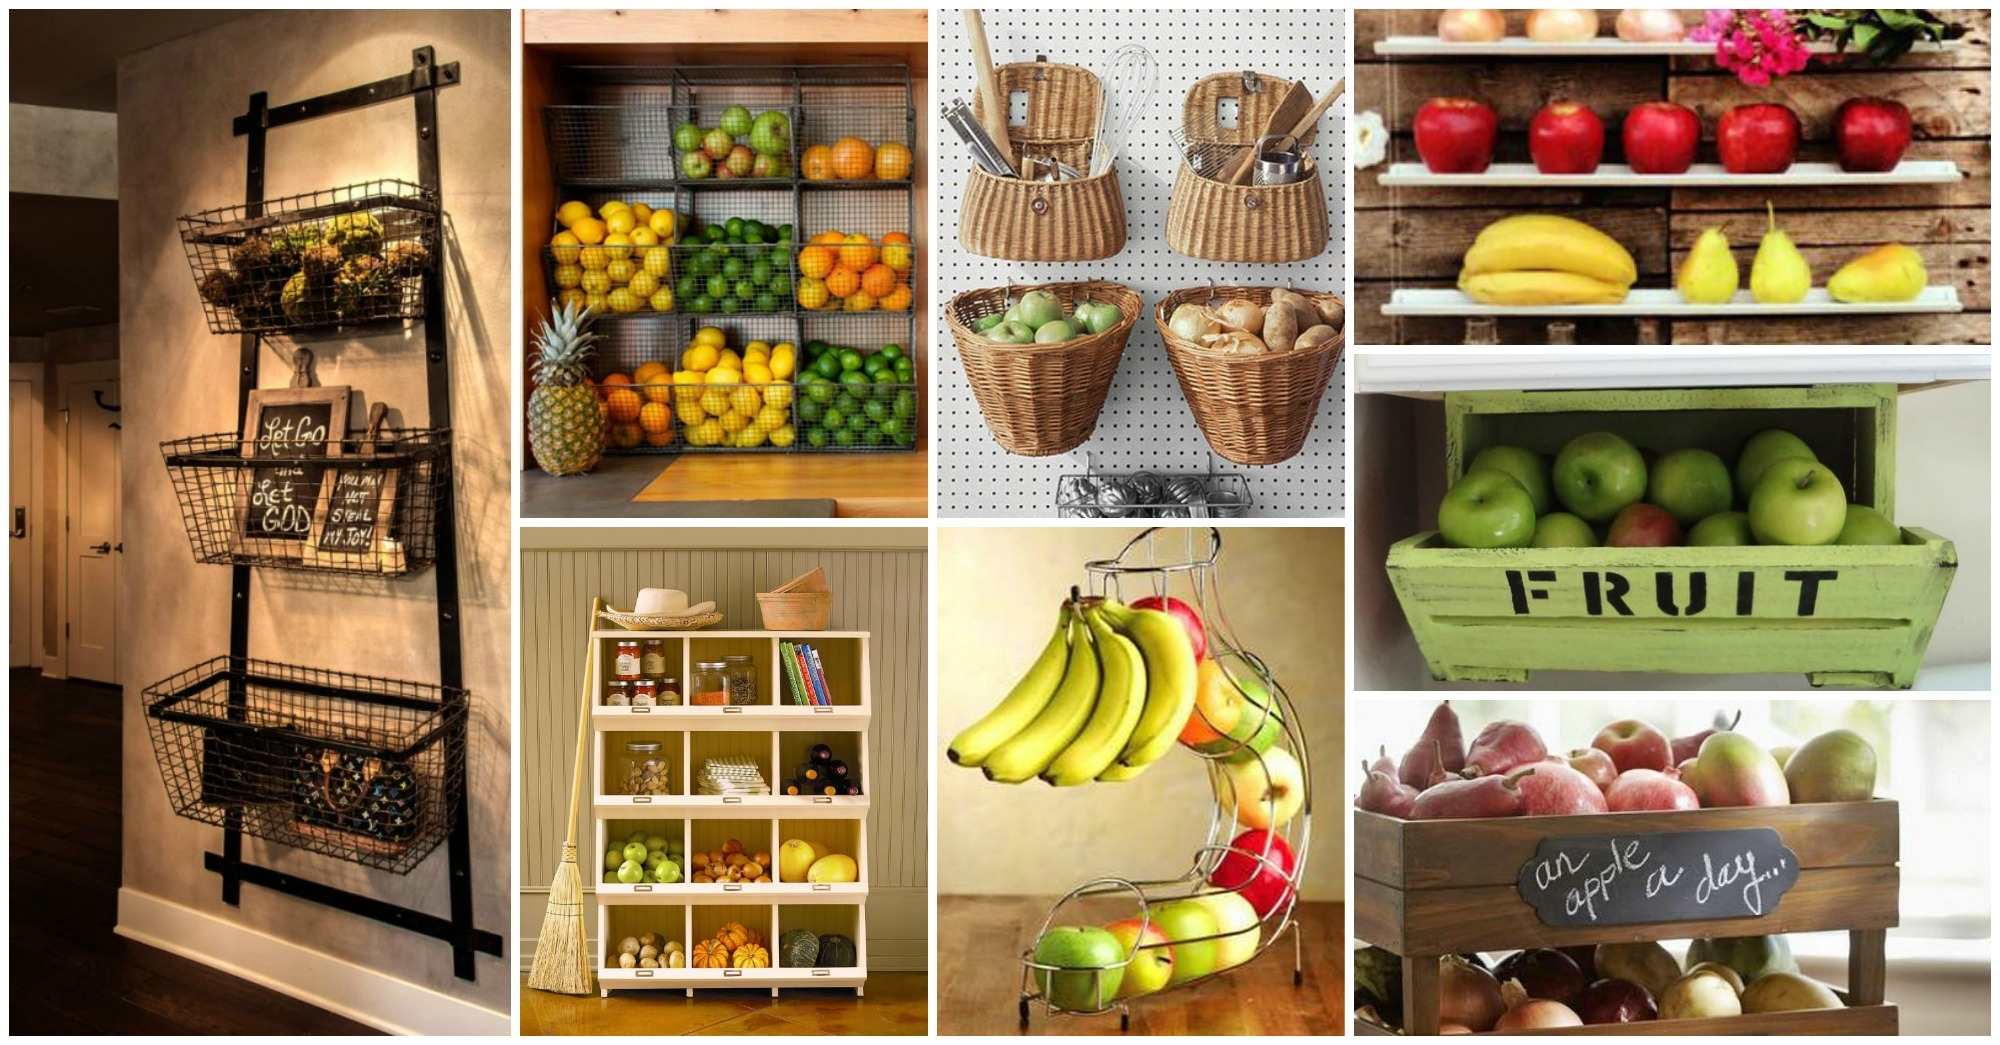 20 adorable fruits storage solutions for your kitchen